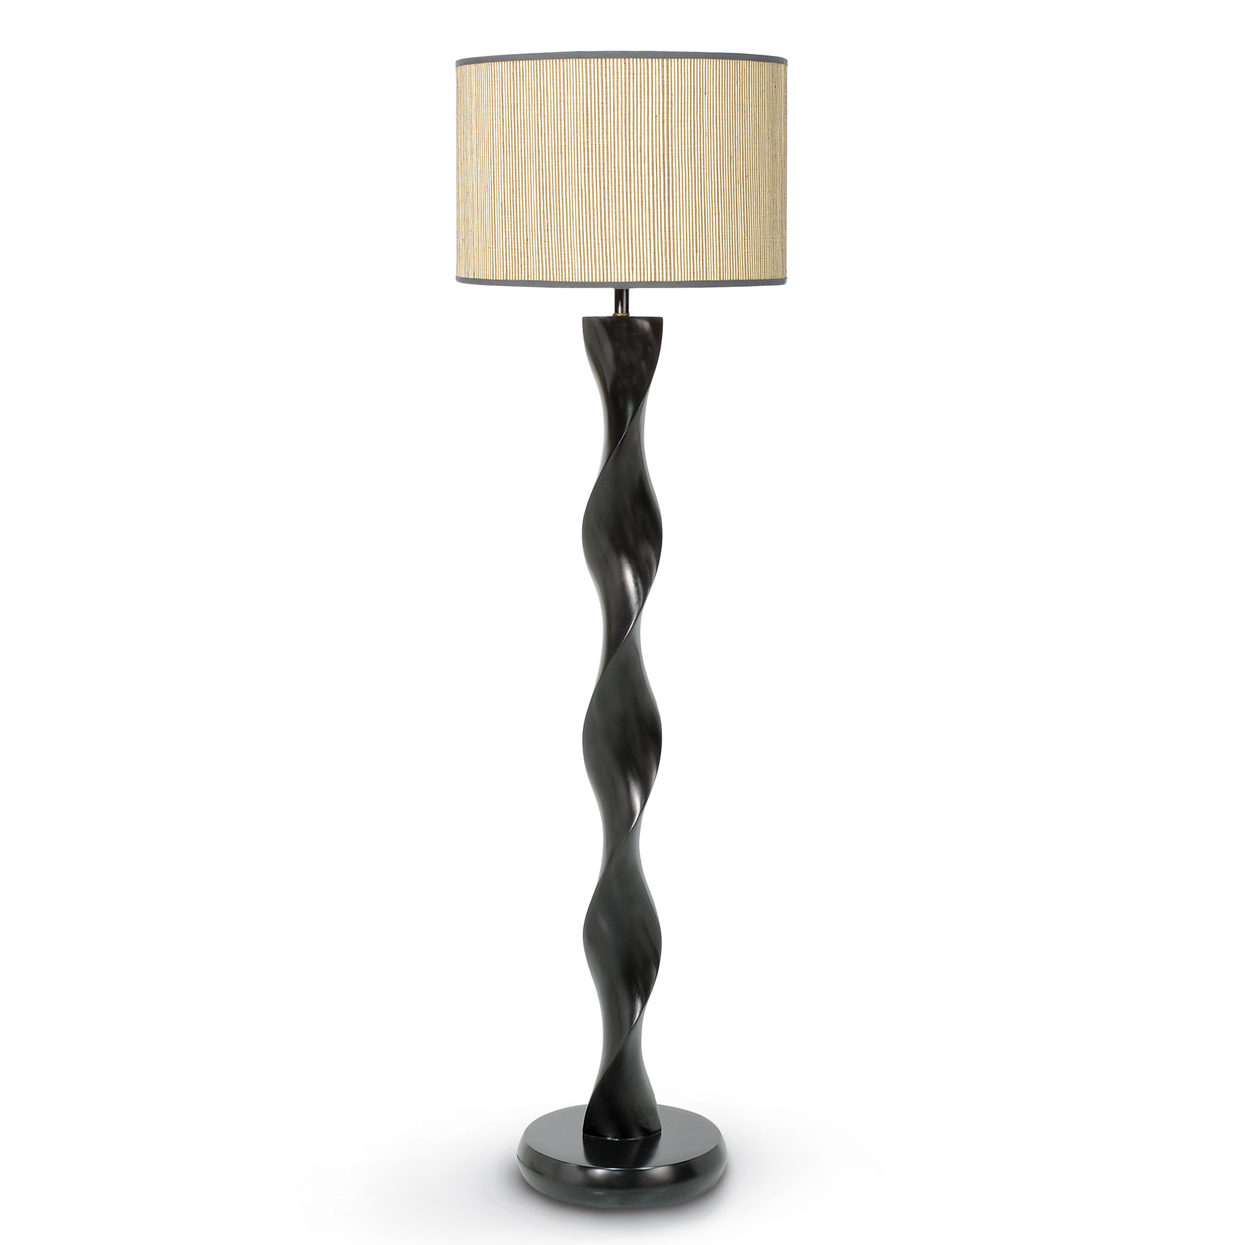 Palecek for Spiral wood floor lamp